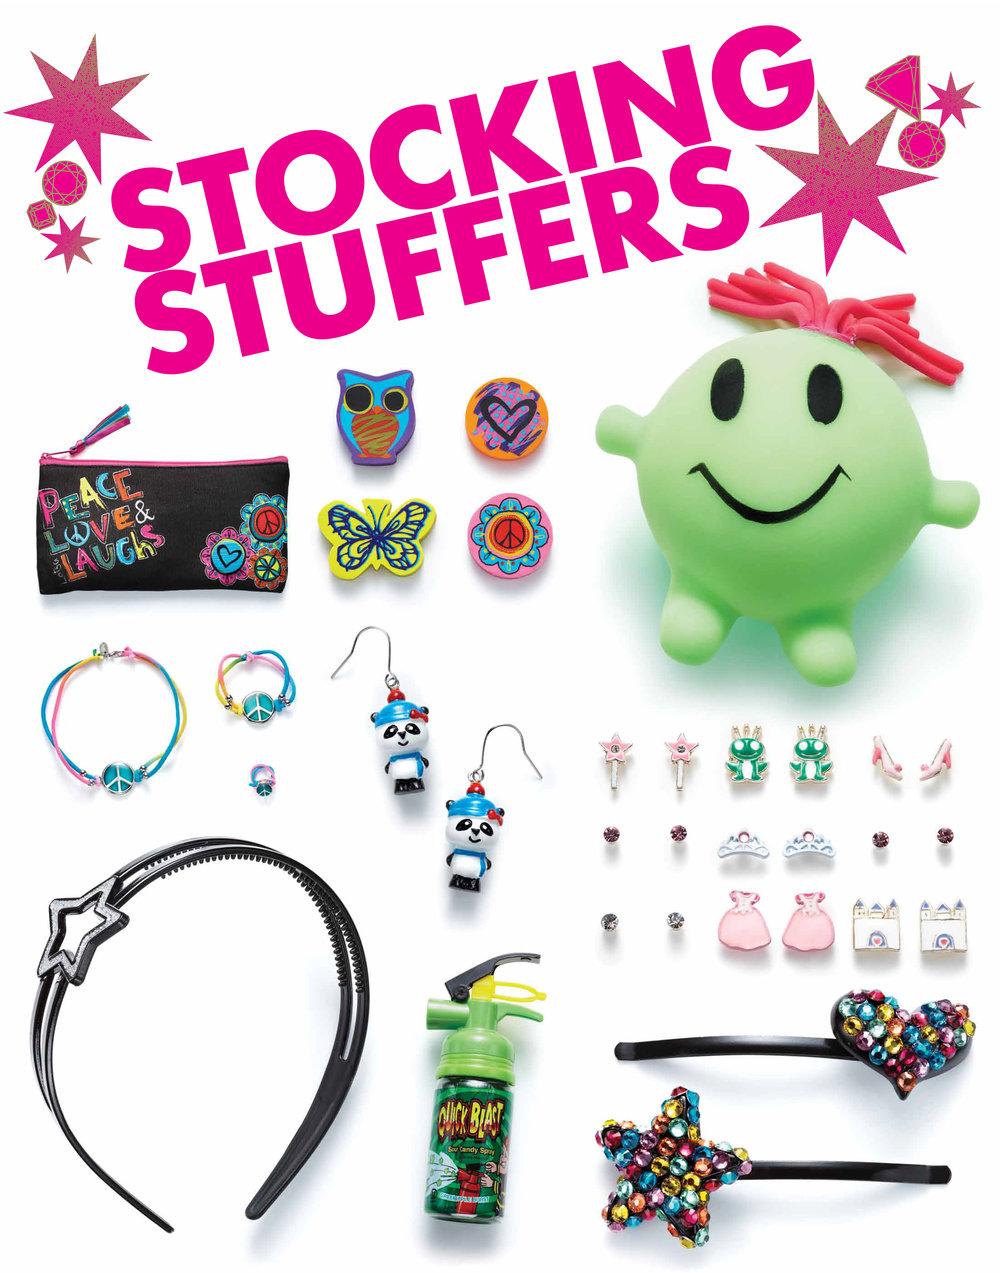 stockingstuffers-3.jpg